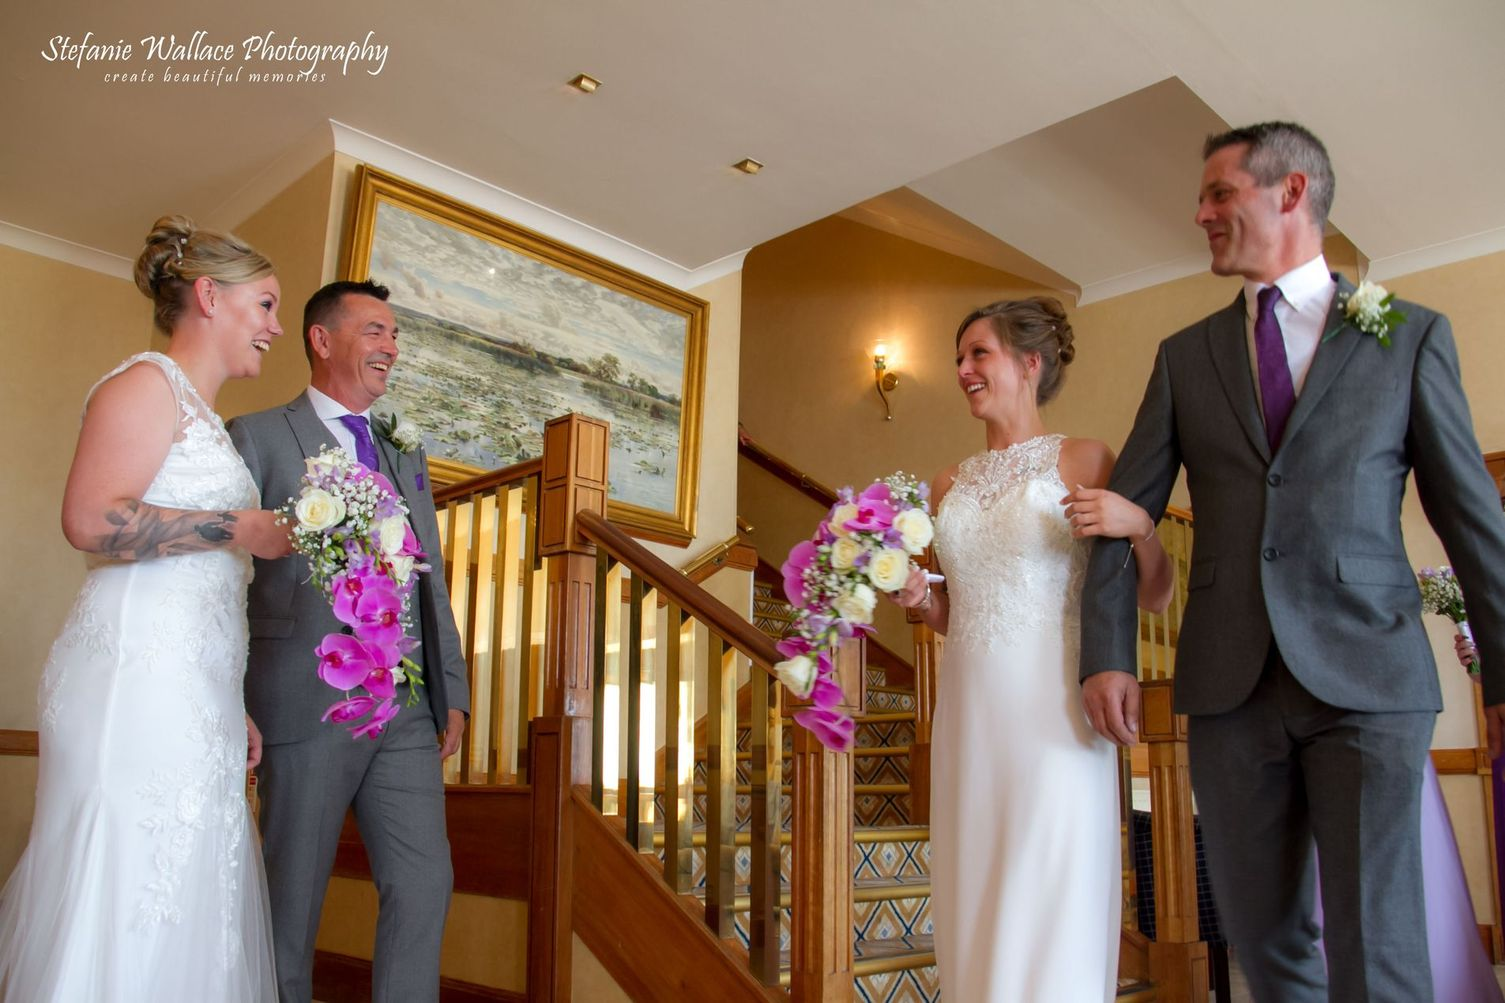 2018 Wedding Couple 40 Stefanie Wallace Photography